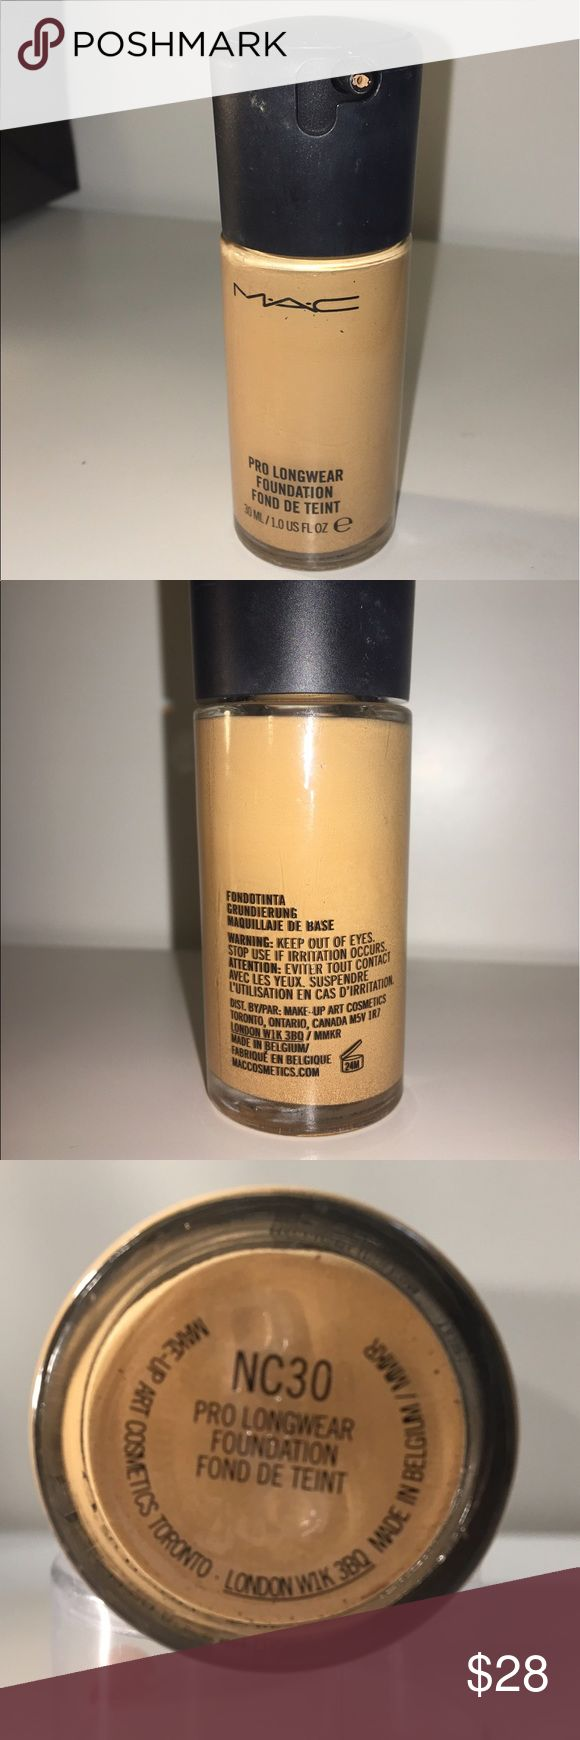 Mac Pro longwear foundation NC30 AUTENTIC AUTENTIC Mac Pro longwear foundation in shade Nc30 it is to dark for me. I used it 3 times only so it is 90% full. No box. MAC Cosmetics Makeup Foundation